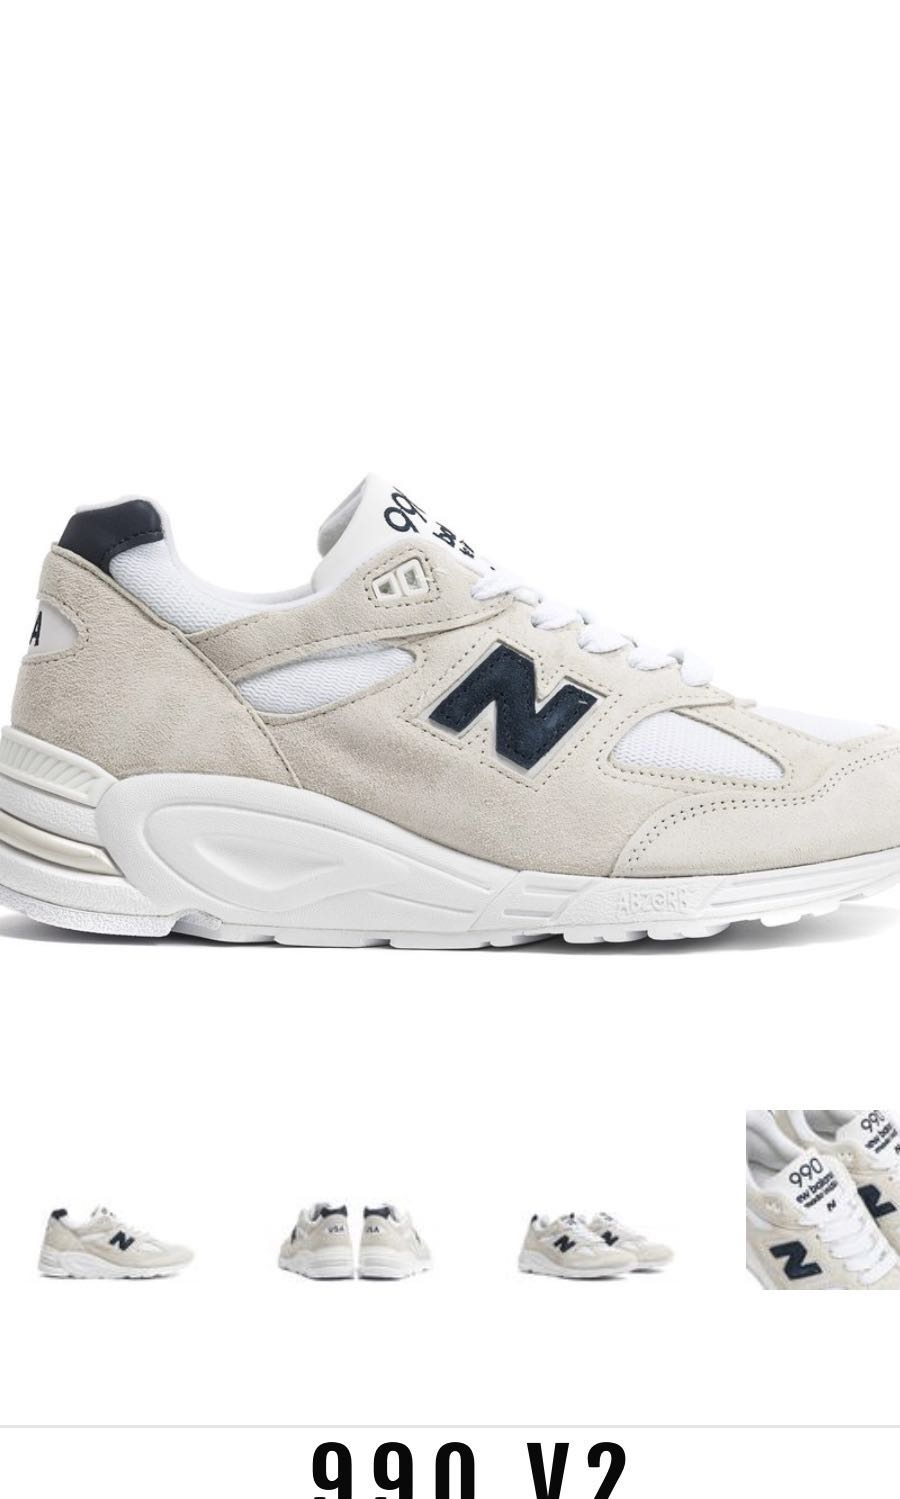 differently 56f1c c2843 NEW BALANCE 990 v2 M990we2 v1 Adidas Yeezy air max off white ...